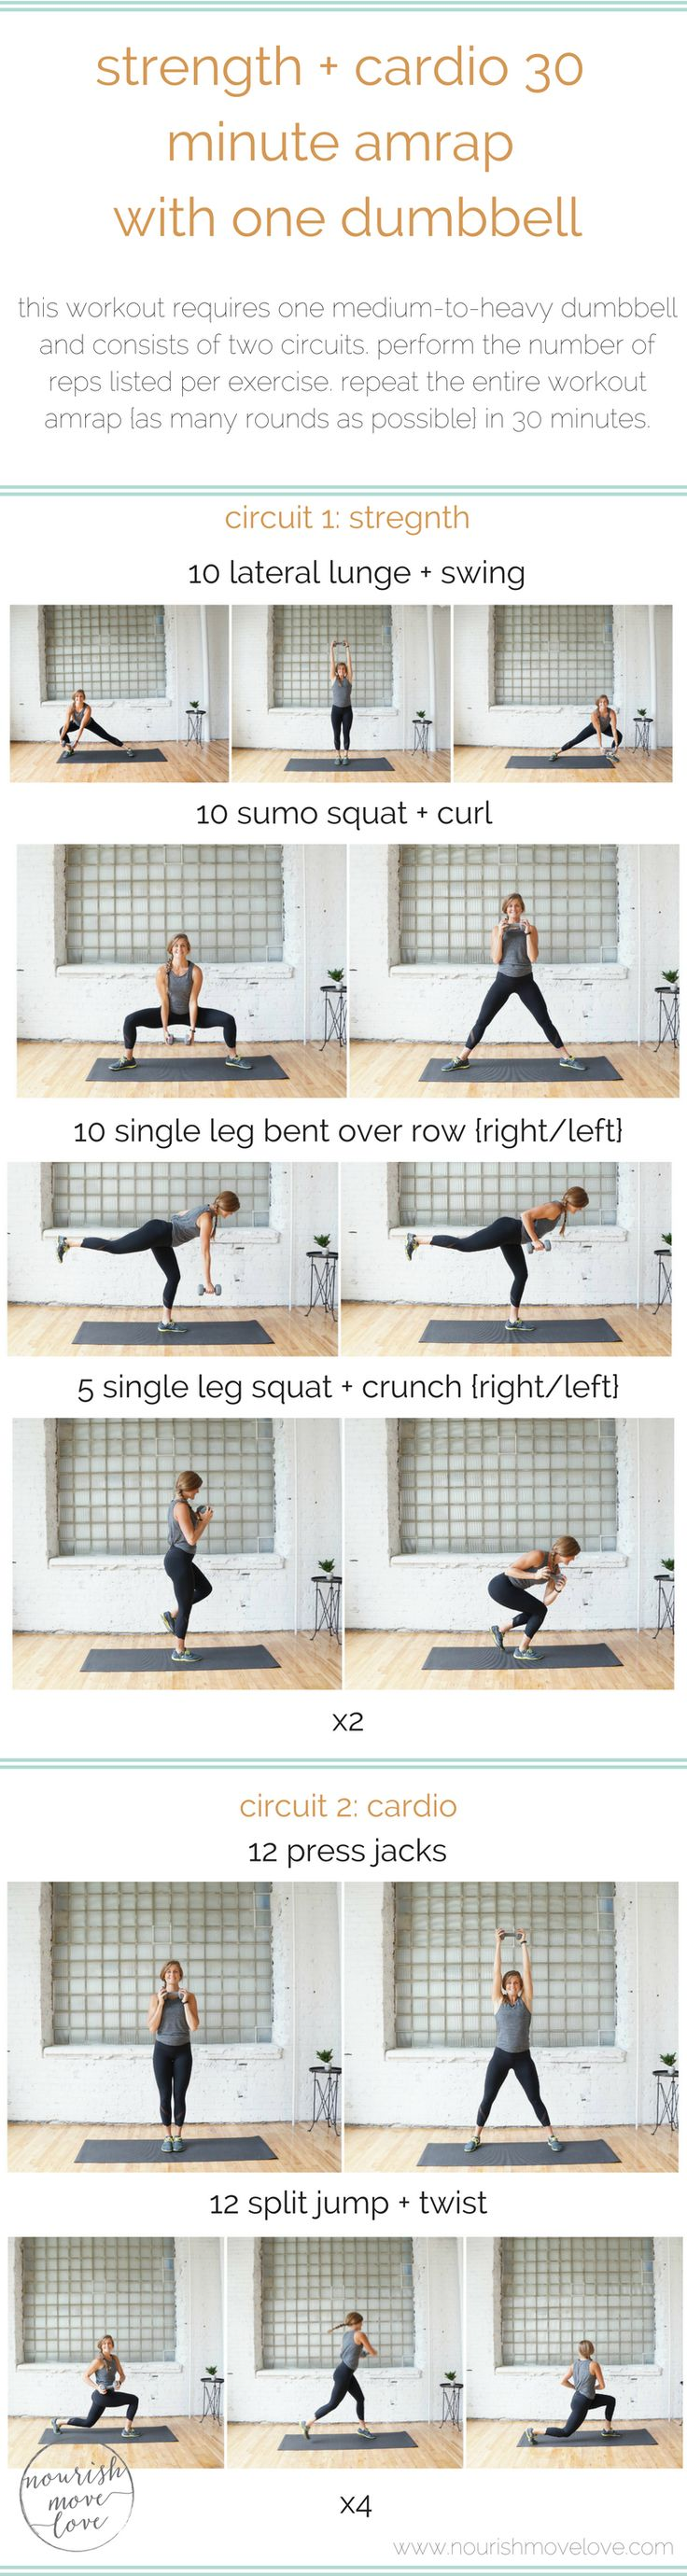 a heart-pumping, leg burning, 30 minute workout that combines strength and cardio movements. it's 6 exercise split into 2 total body workouts, and all you need is 1 dumbbell!